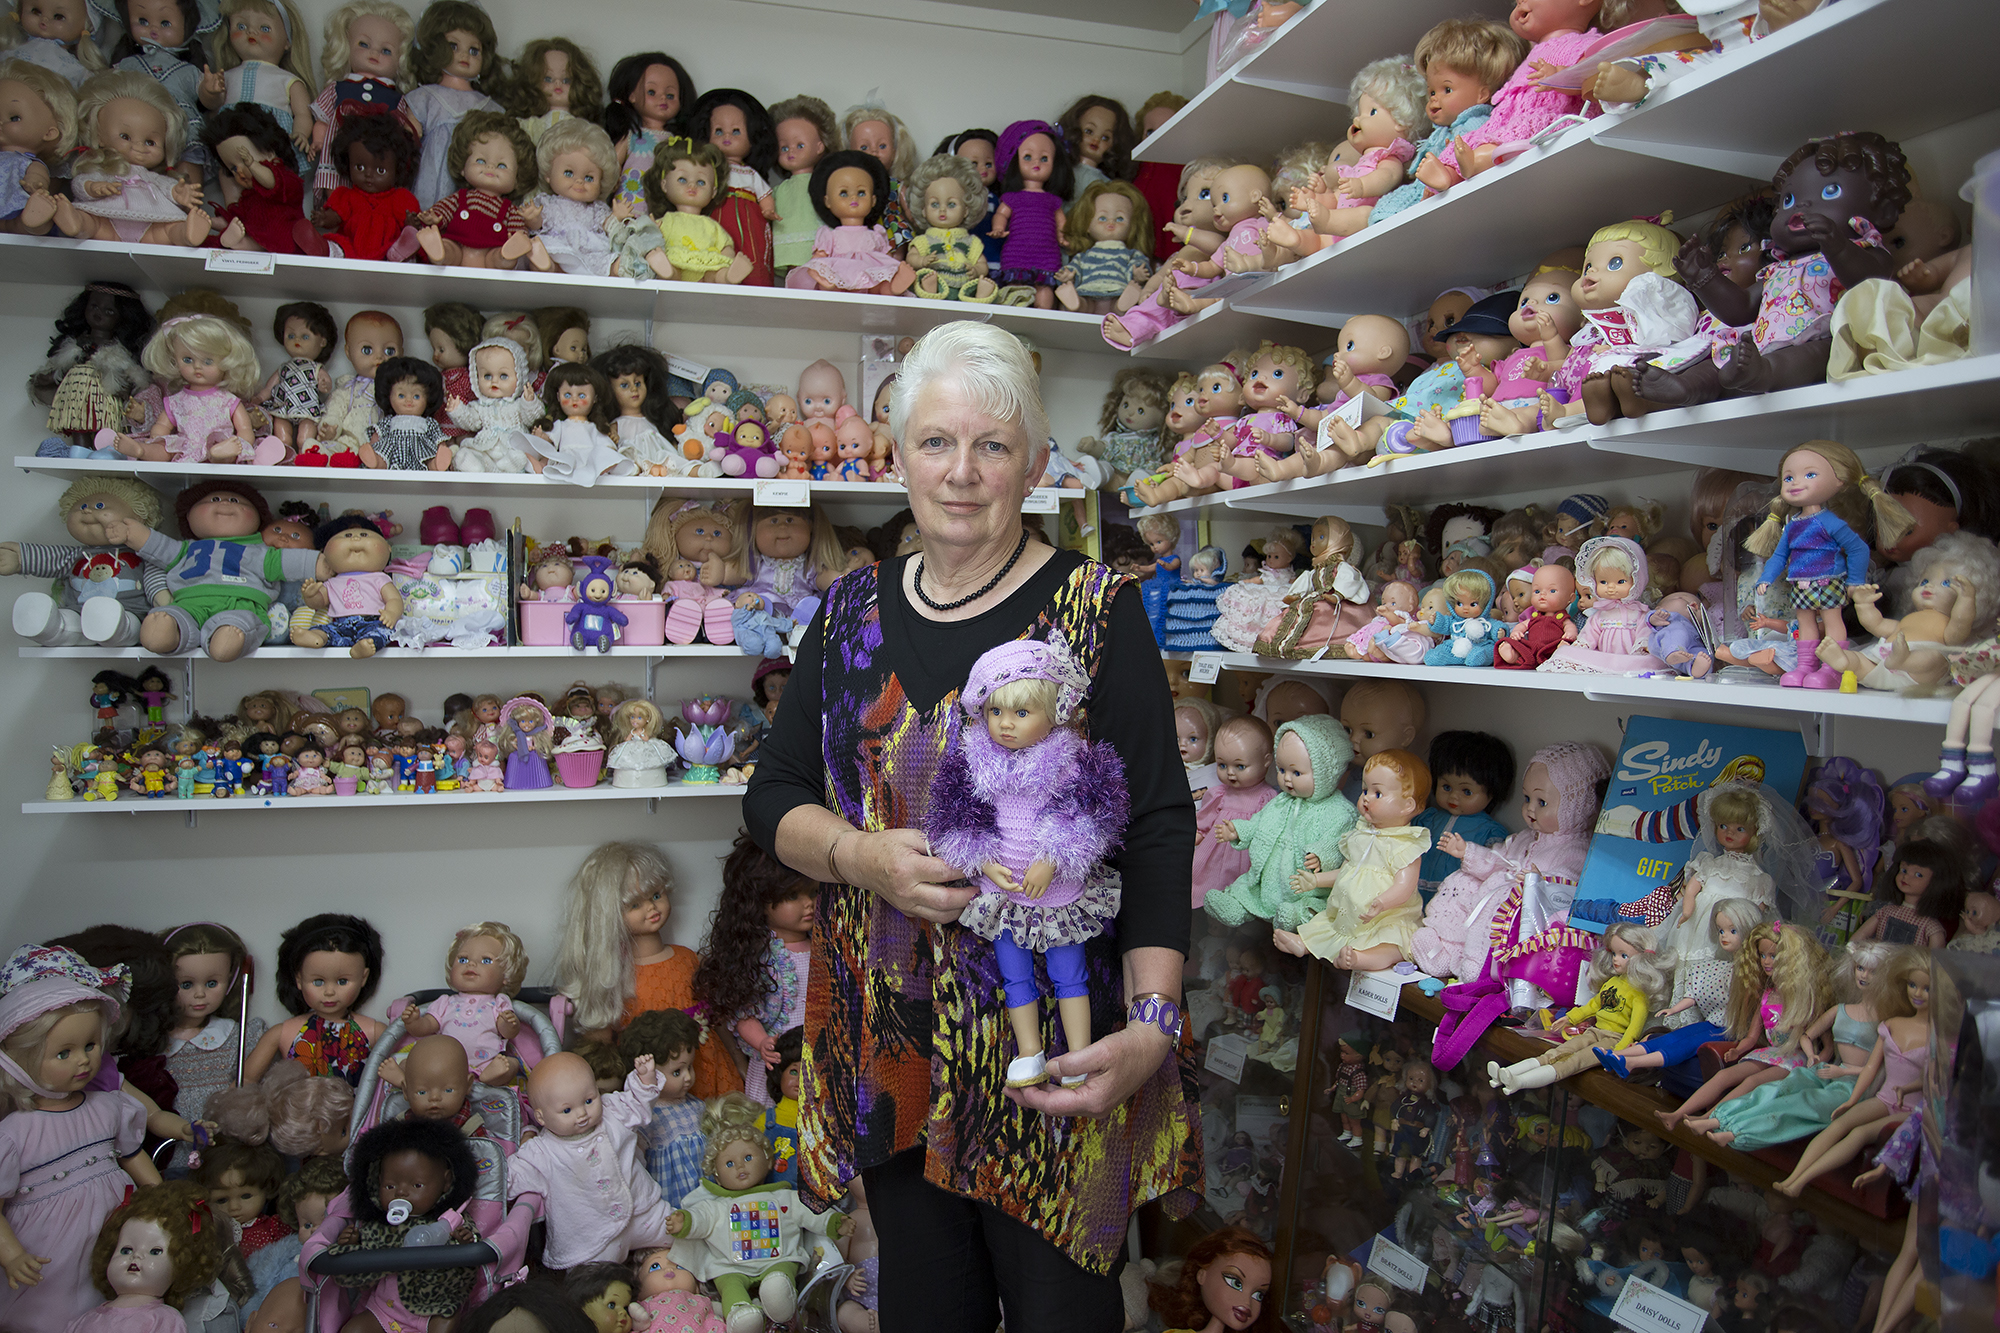 Judith amongst her collection over over 2000 dolls, holding a Kidz n Cats doll.